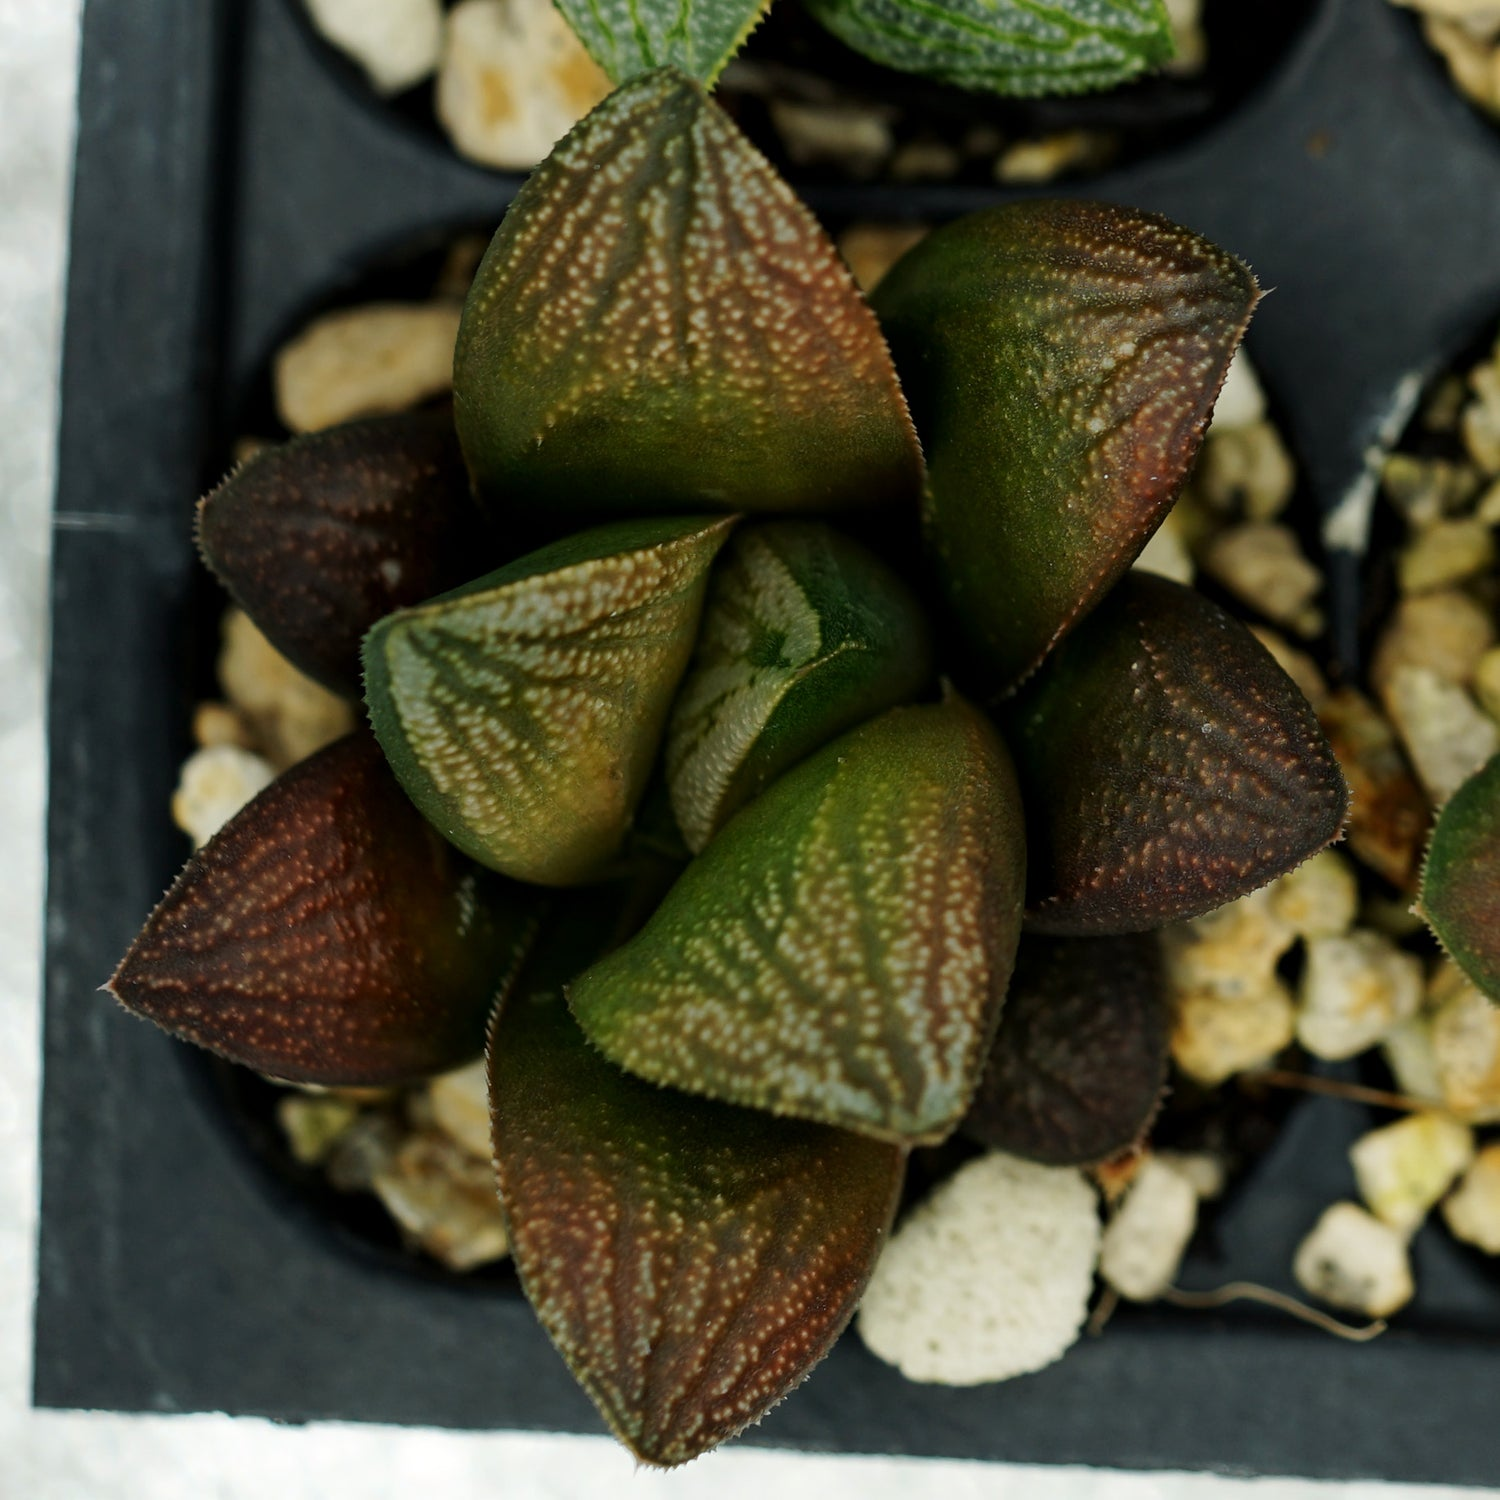 Haworthia hybrid series PP261, 6 siblings